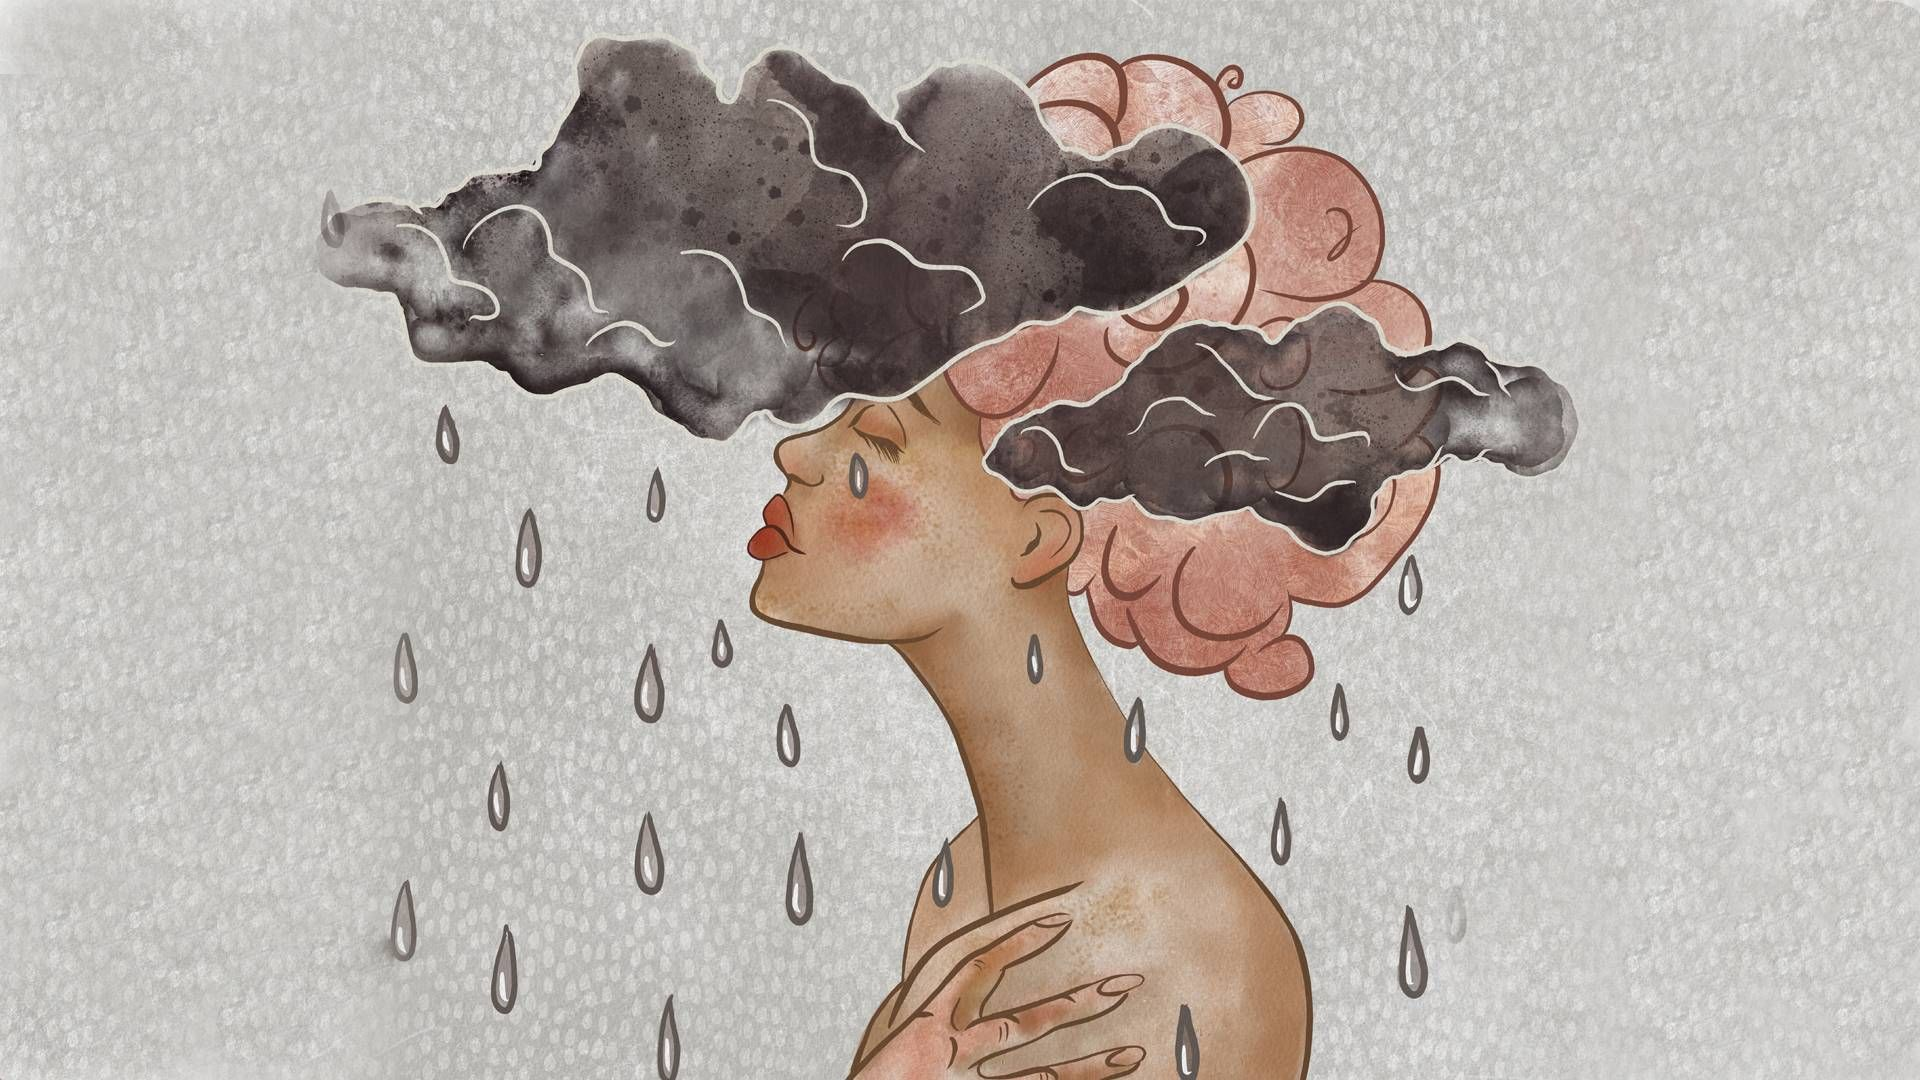 Woman with clouds over her head. rewire pbs decolonizing therapy